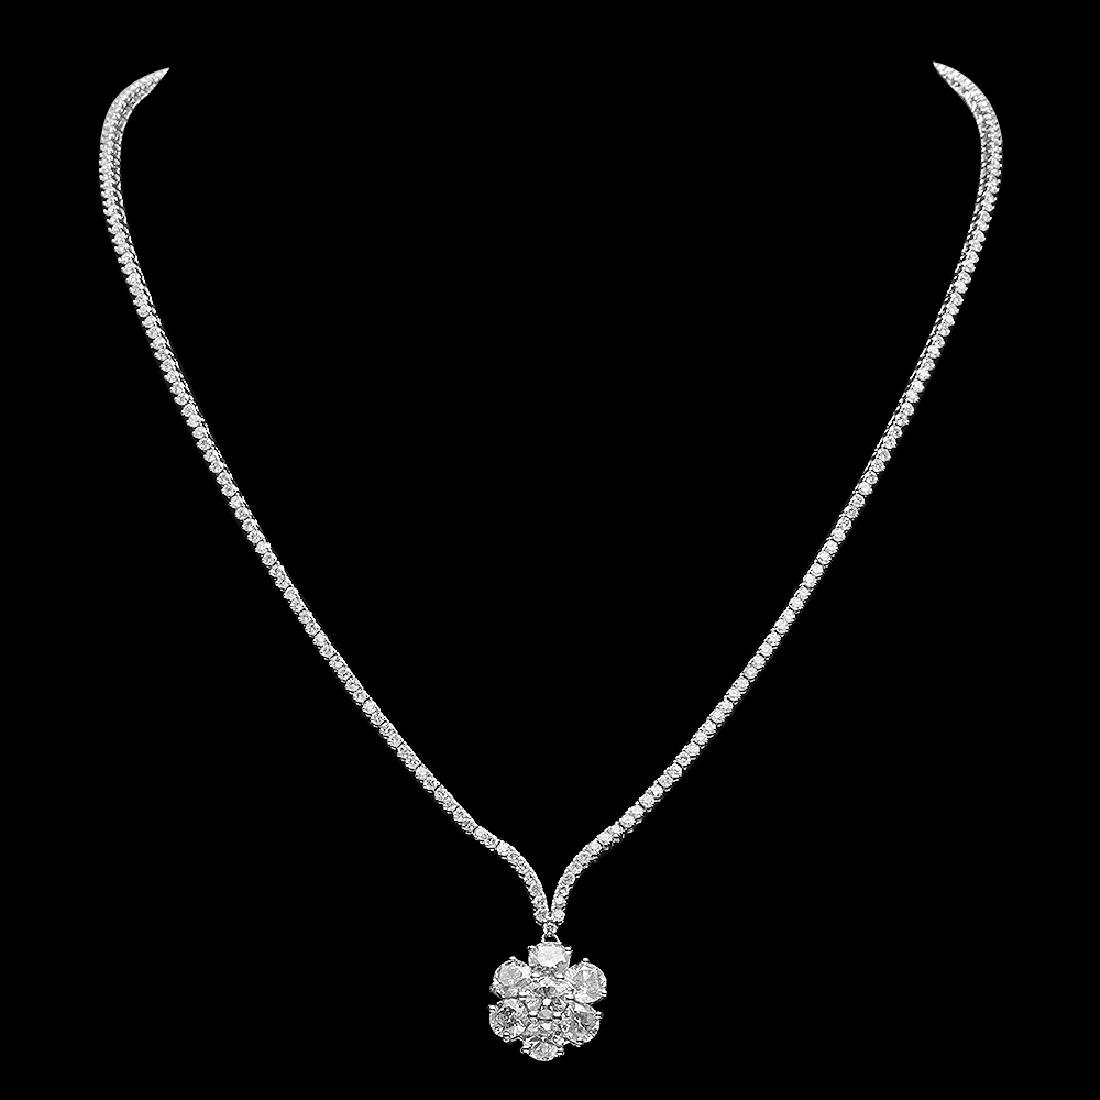 18K Gold 8.75ct Diamond Necklace